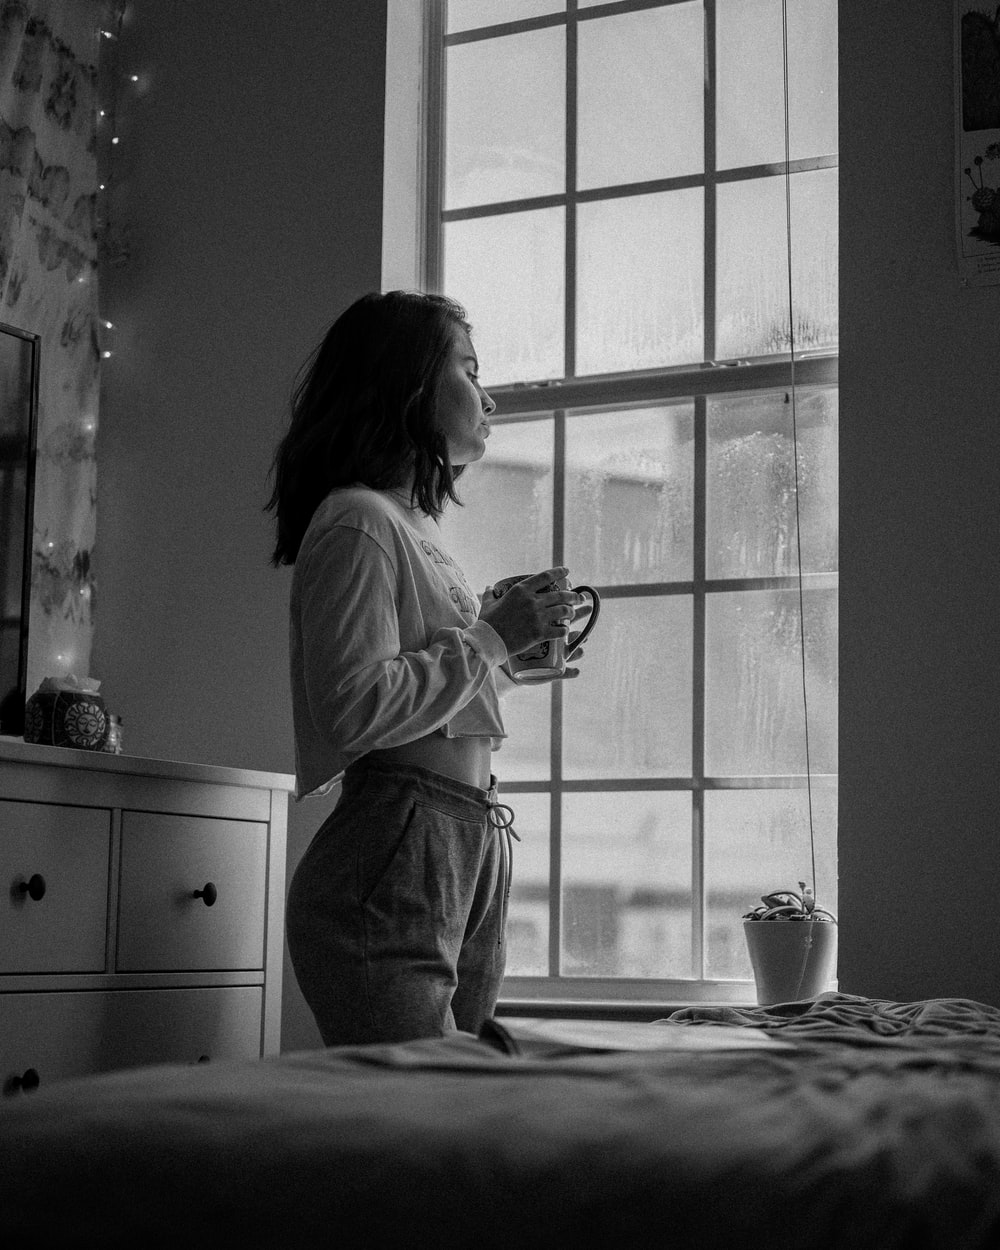 woman in white long sleeve shirt holding mug in grayscale photography